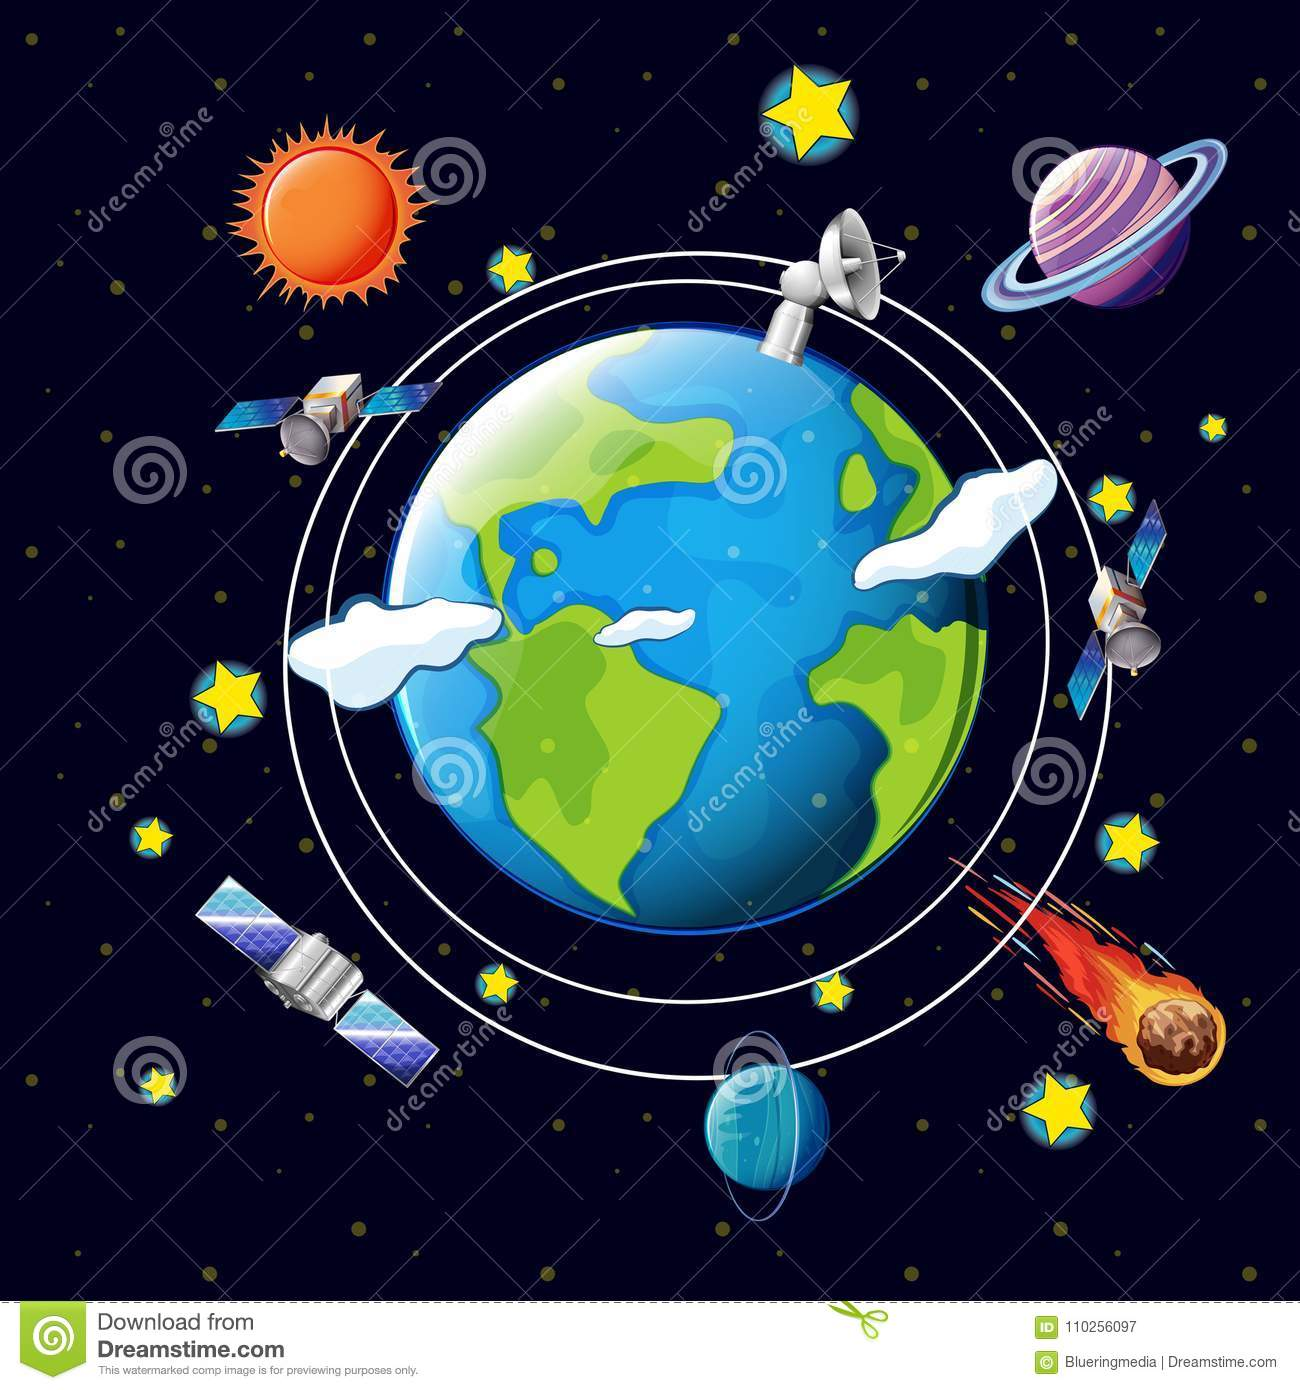 Space Theme With Satellites And Planets Around Earth Stock Vector.